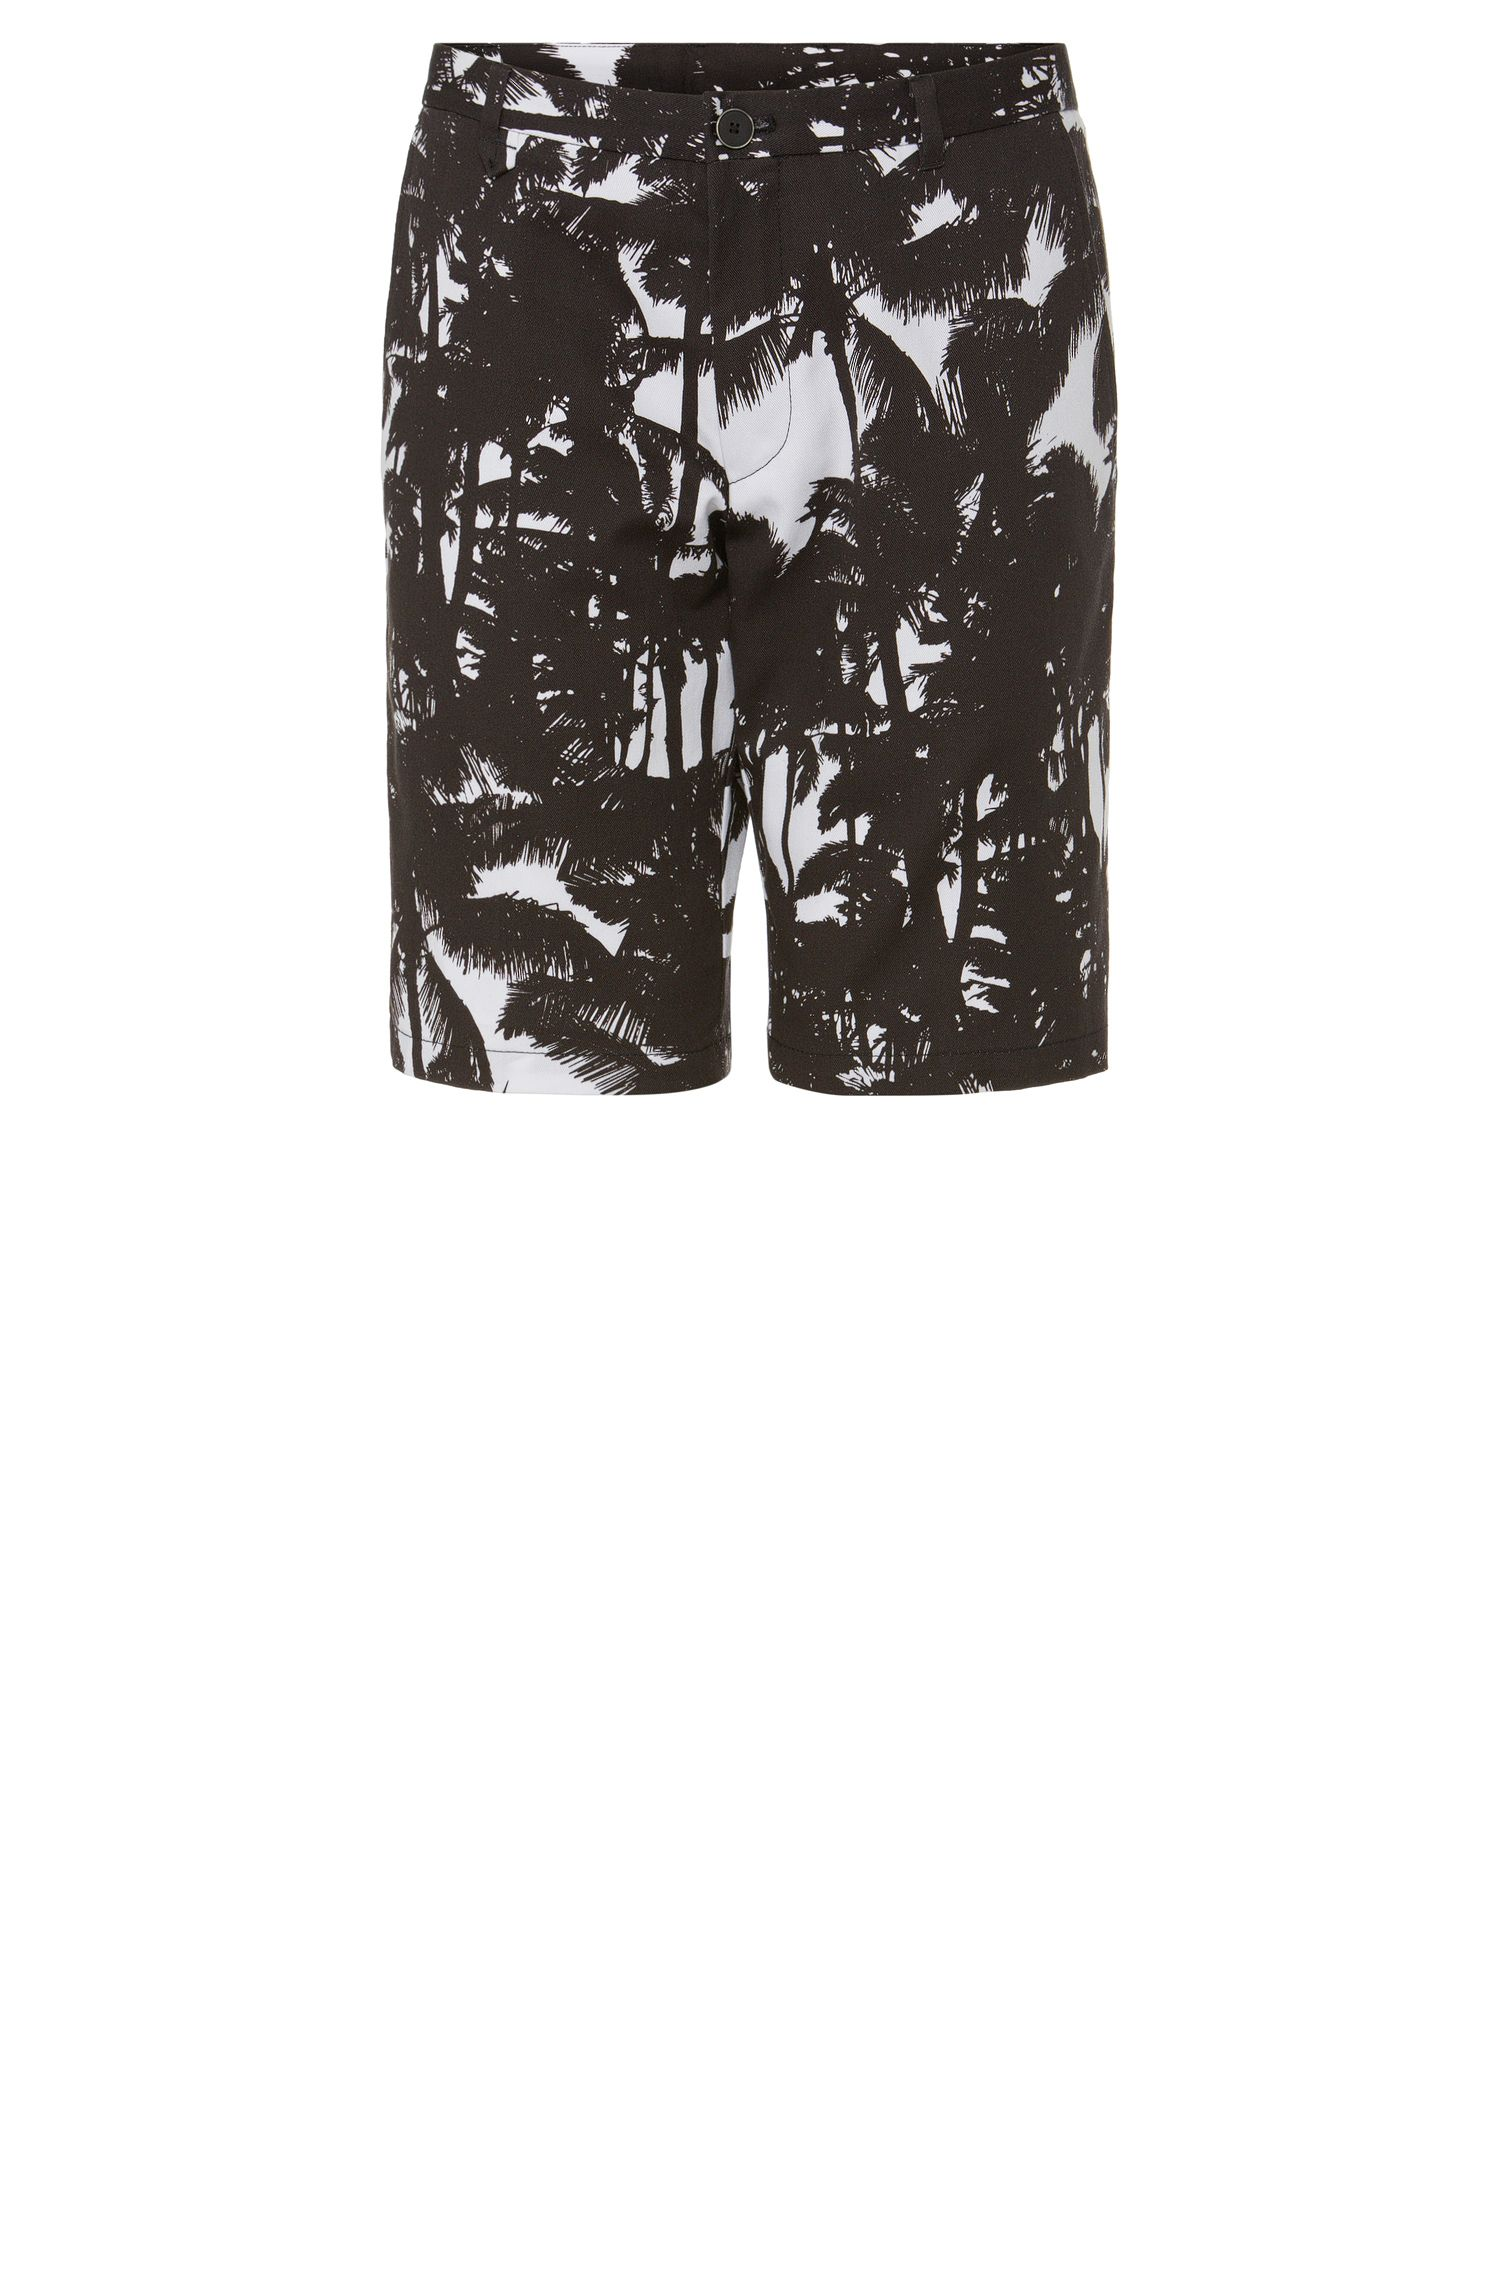 'Hano' | Slim Fit, Cotton Printed Shorts